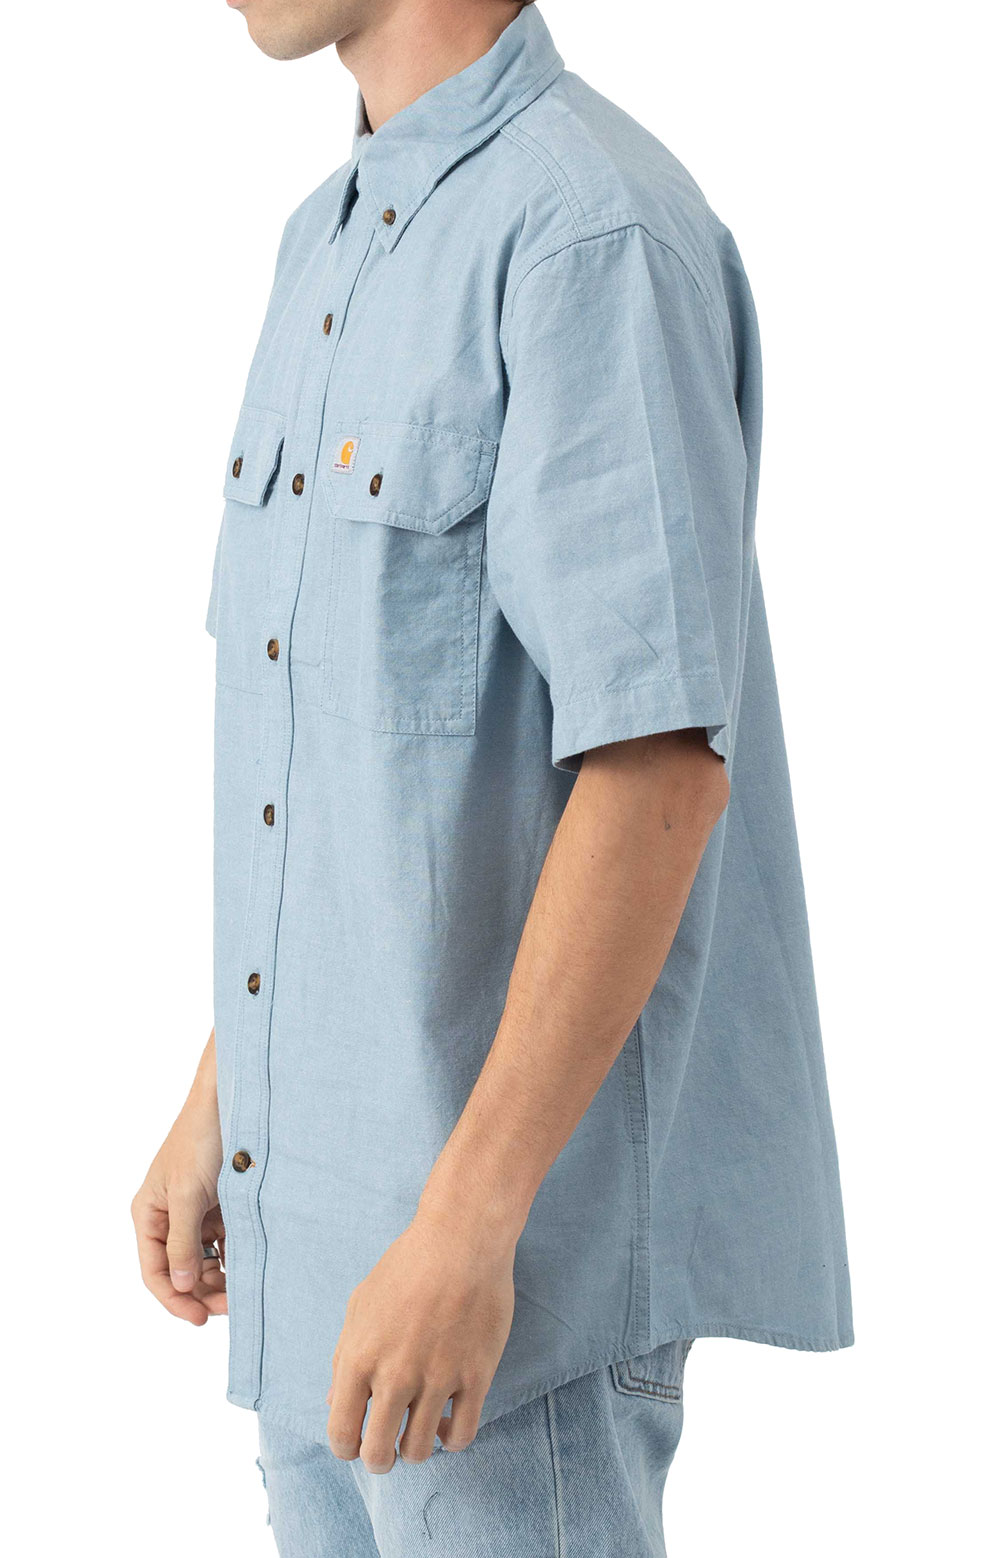 (104369) Original Fit MW S/S Button-Up Shirt - Blue Chambray  2